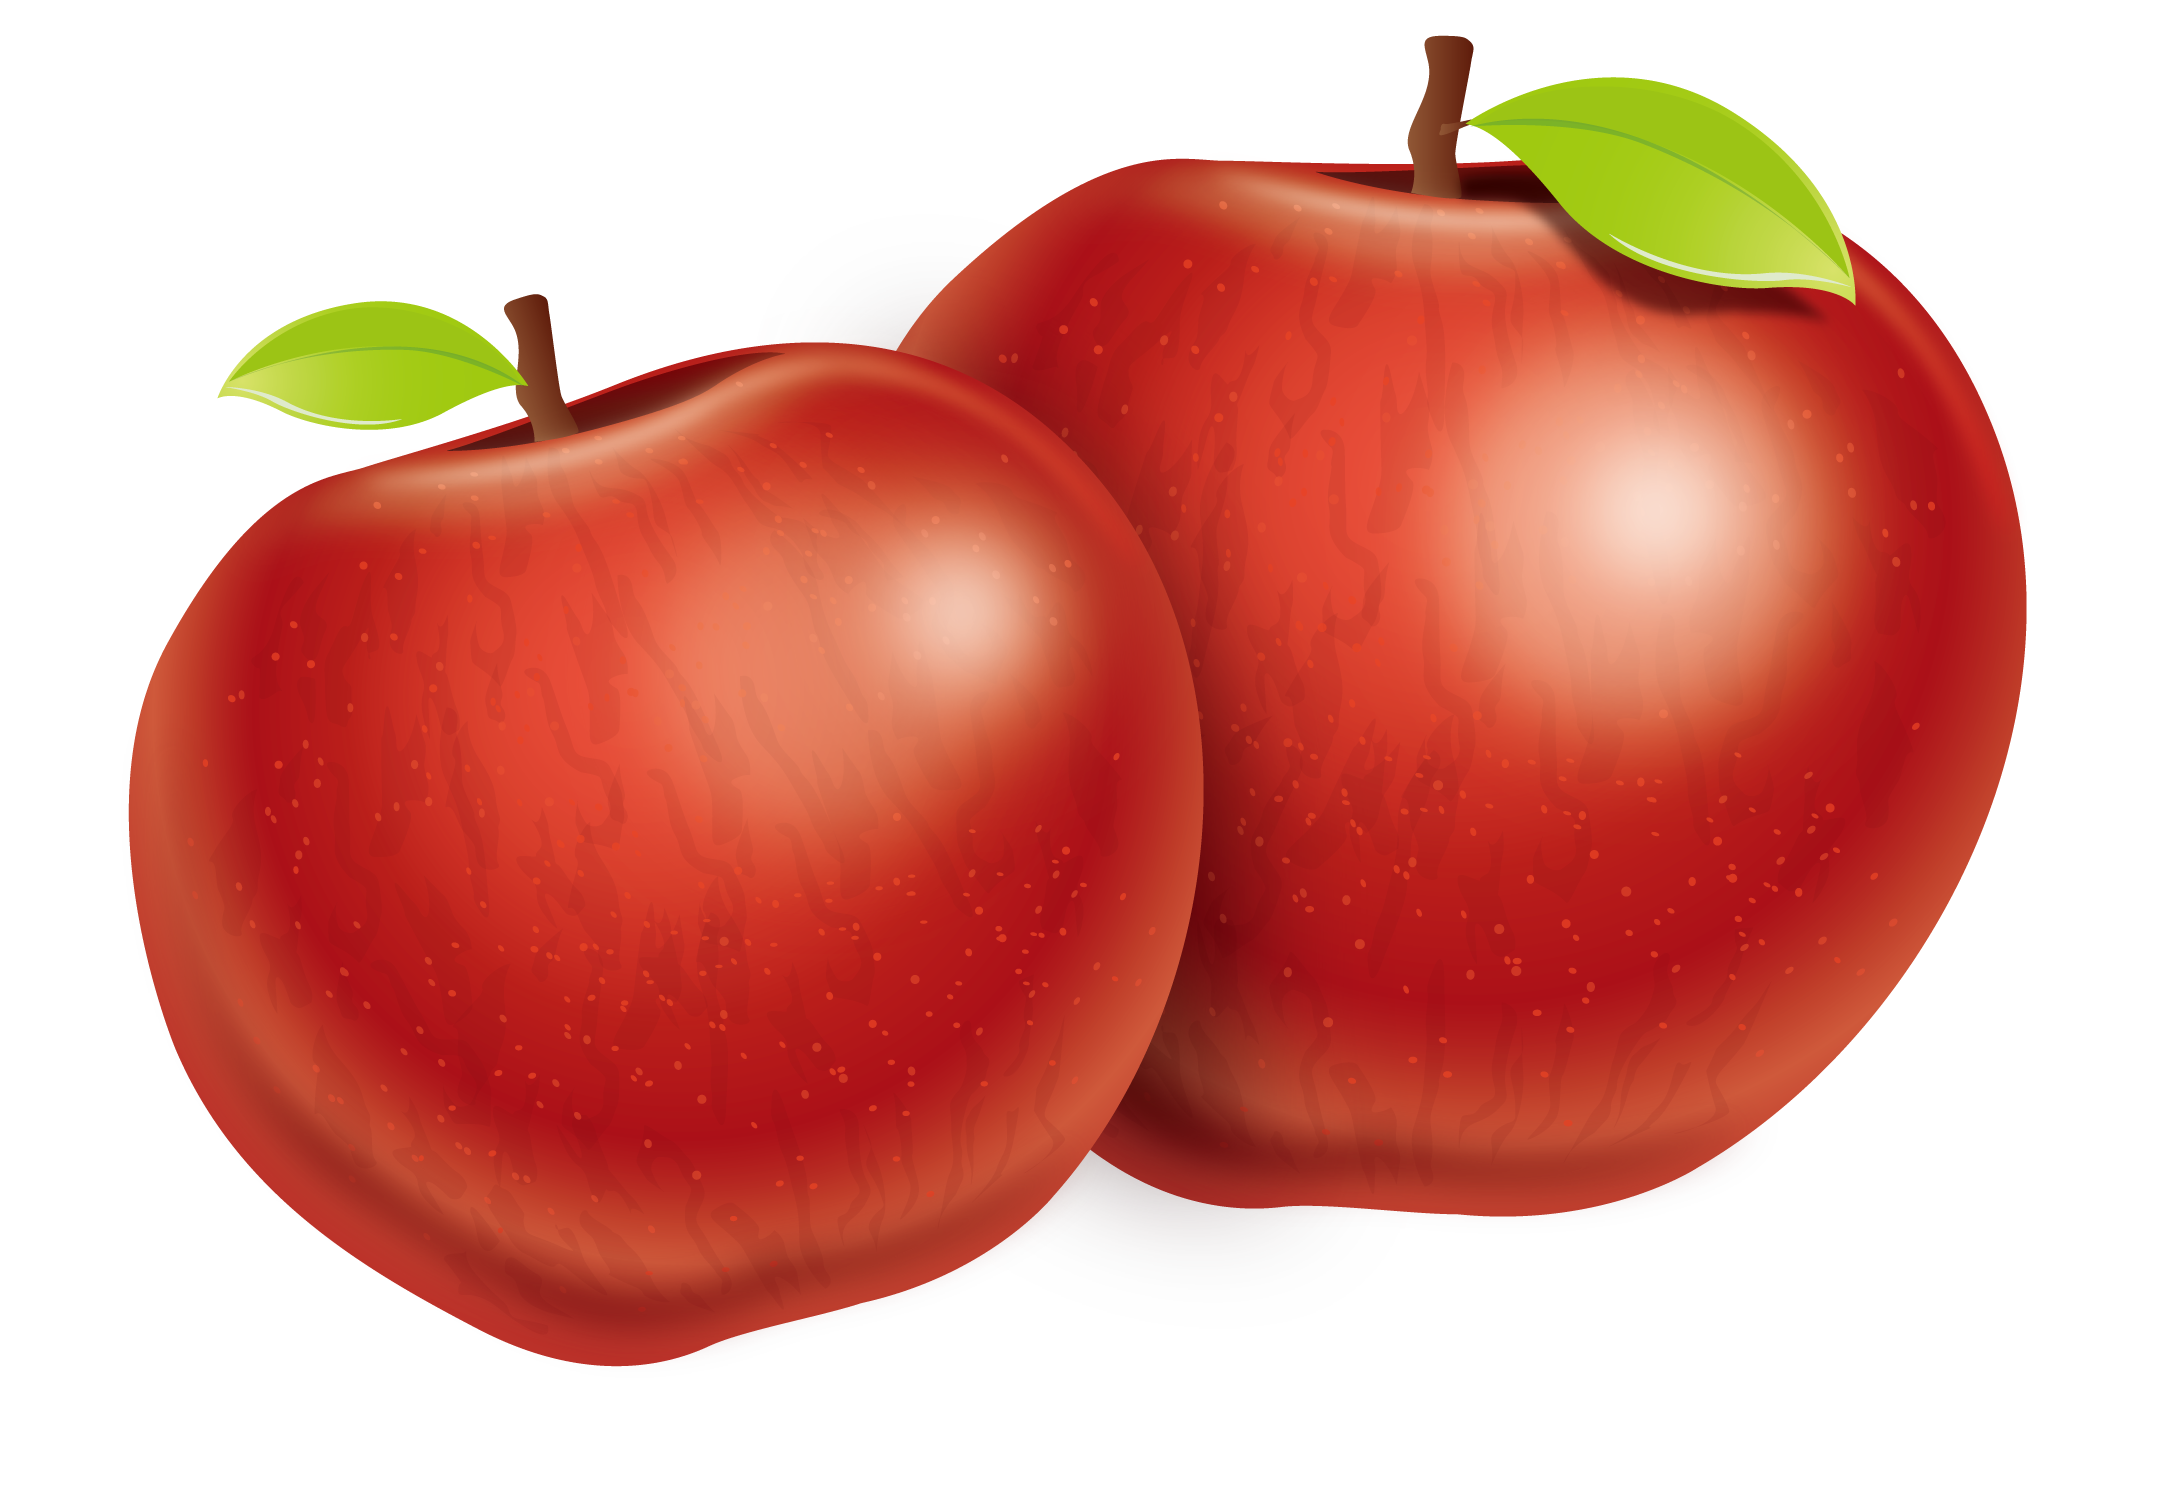 Download Tomato Apple Plum Two Fuji Vector Apples HQ PNG Image.